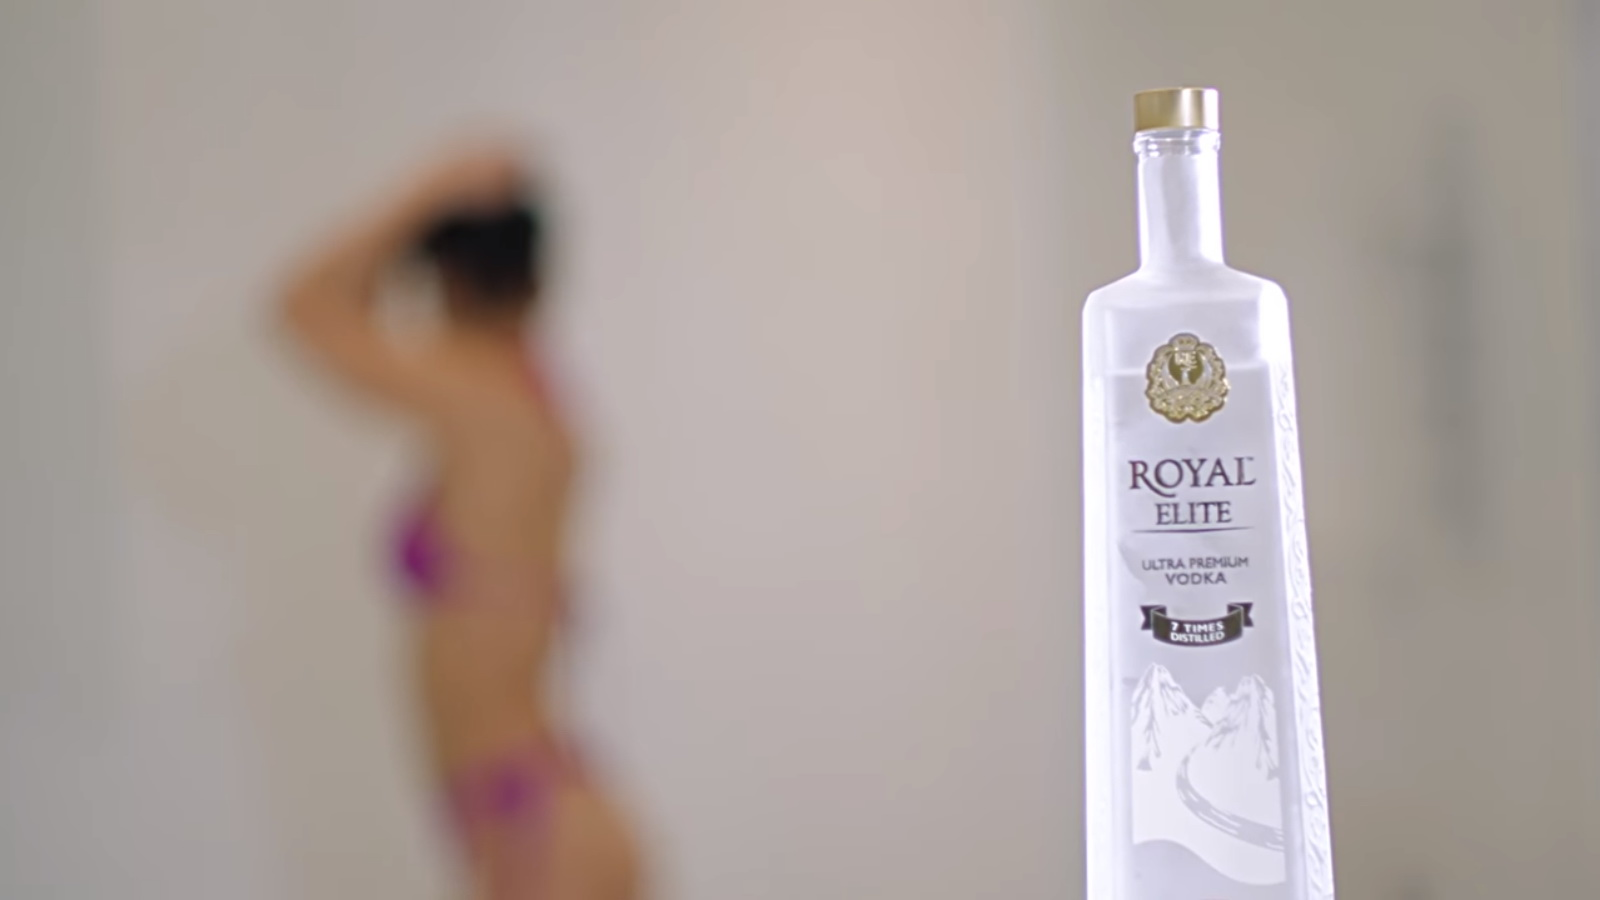 ROYAL ELITE VODKA - Migos – Slippery feat. Gucci Mane Music Video  Product Placement Review